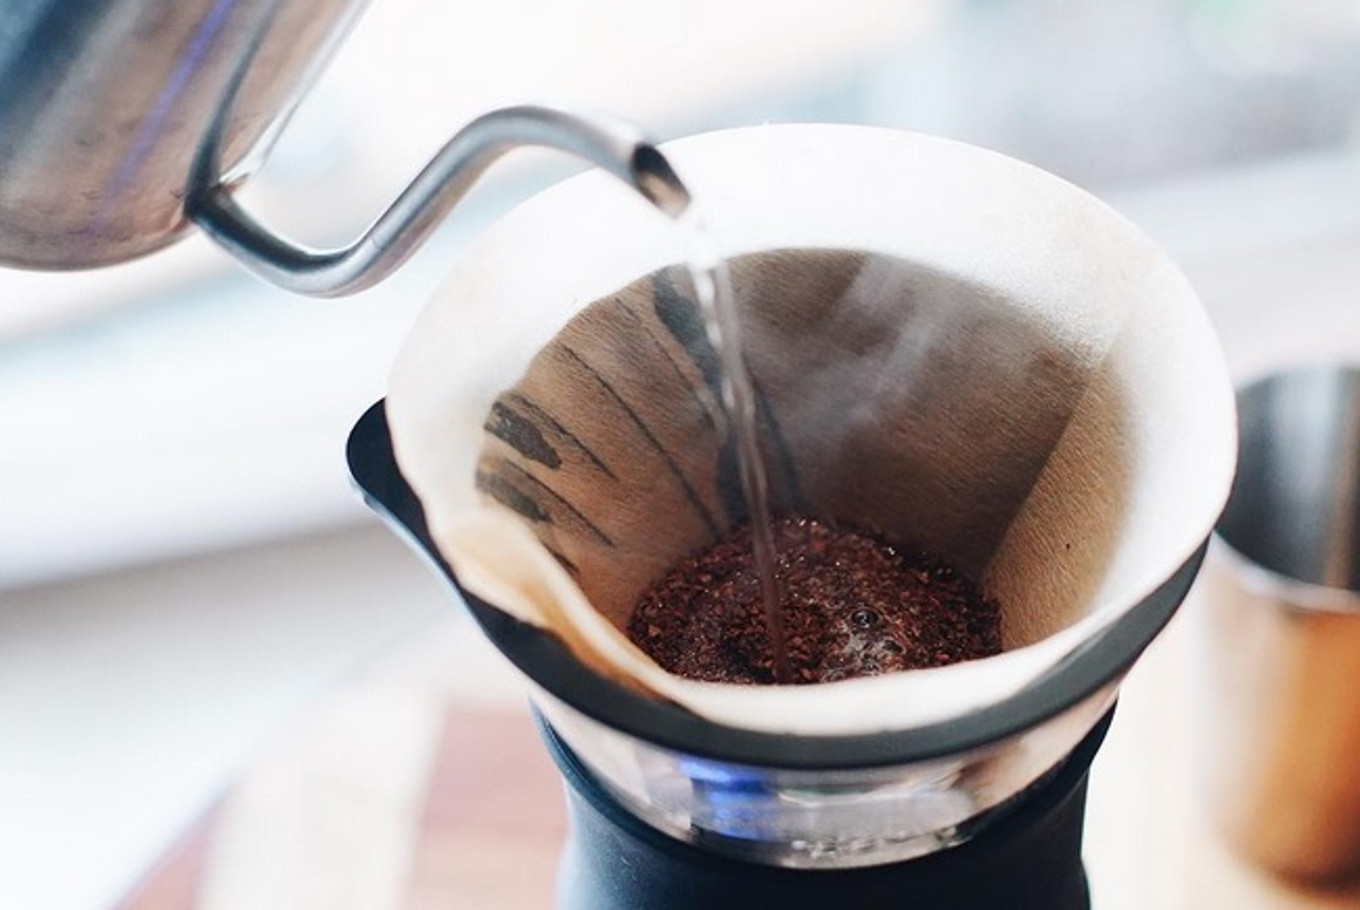 New service delivers curated coffee to your home